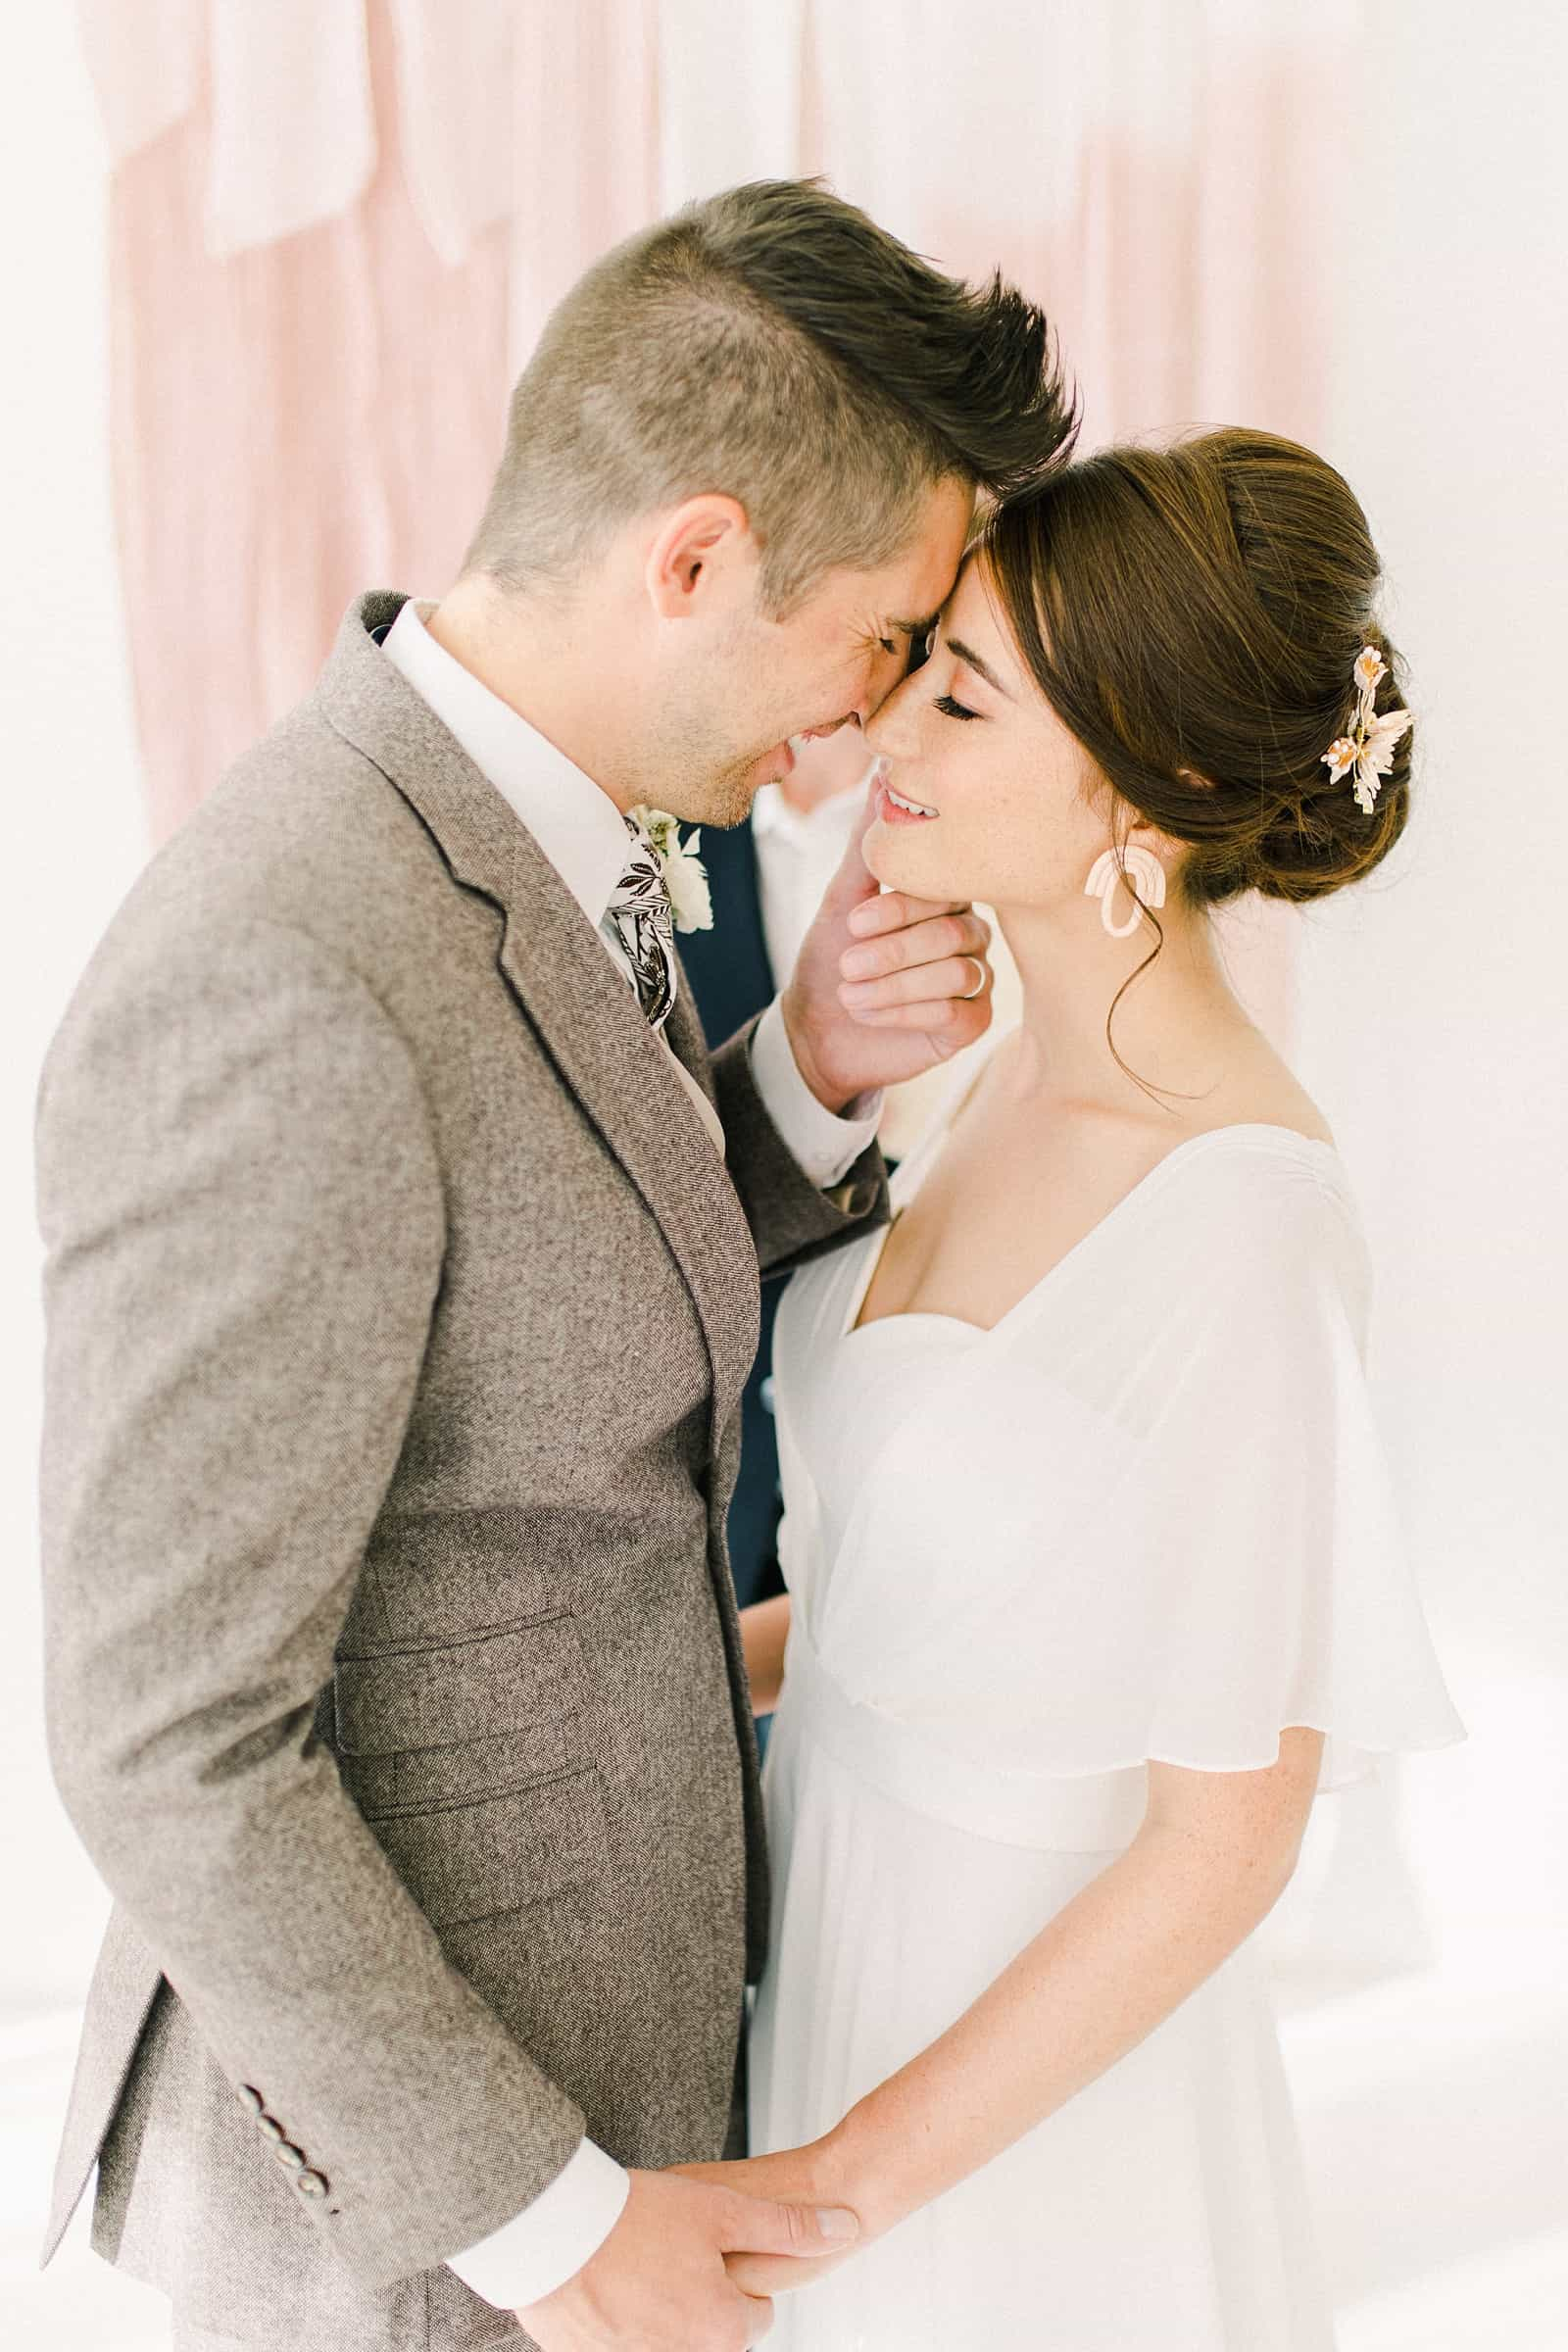 Bride and groom first kiss in front of blush pink painted ombre watercolor backdrop